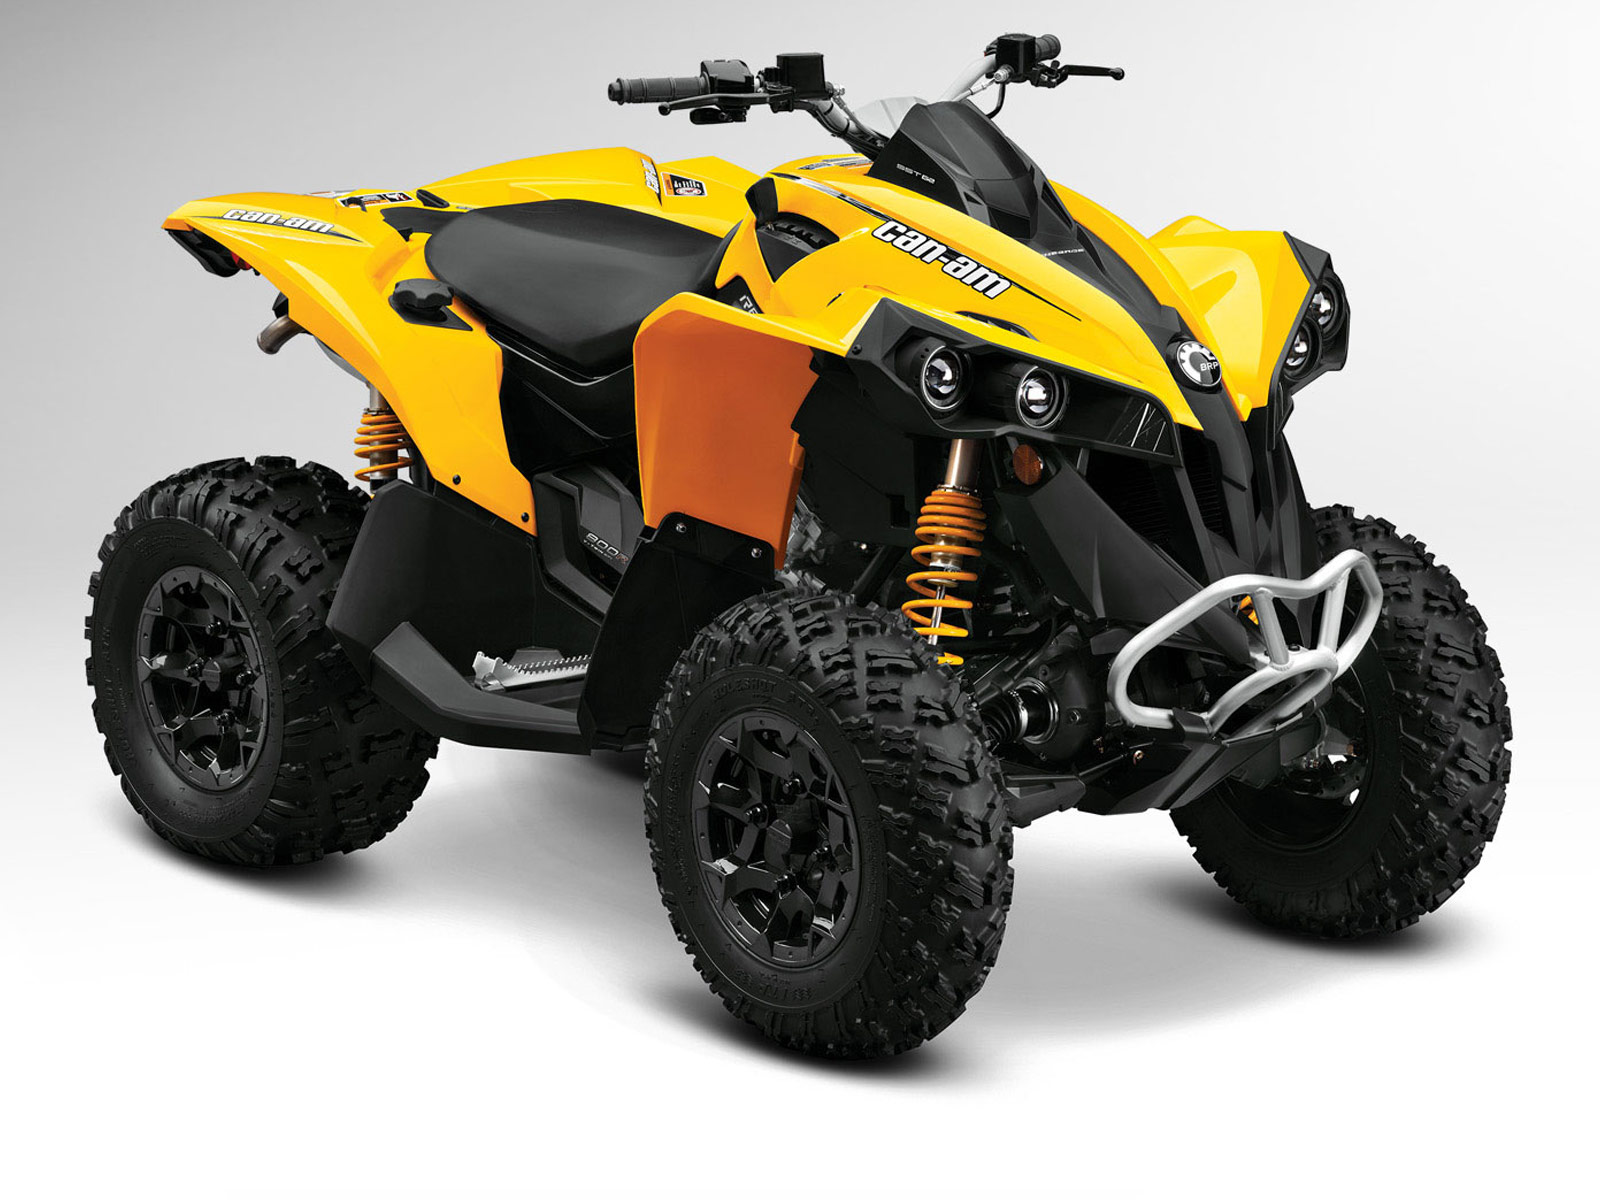 2012 canam outlander renegade 800r insurance information. Black Bedroom Furniture Sets. Home Design Ideas